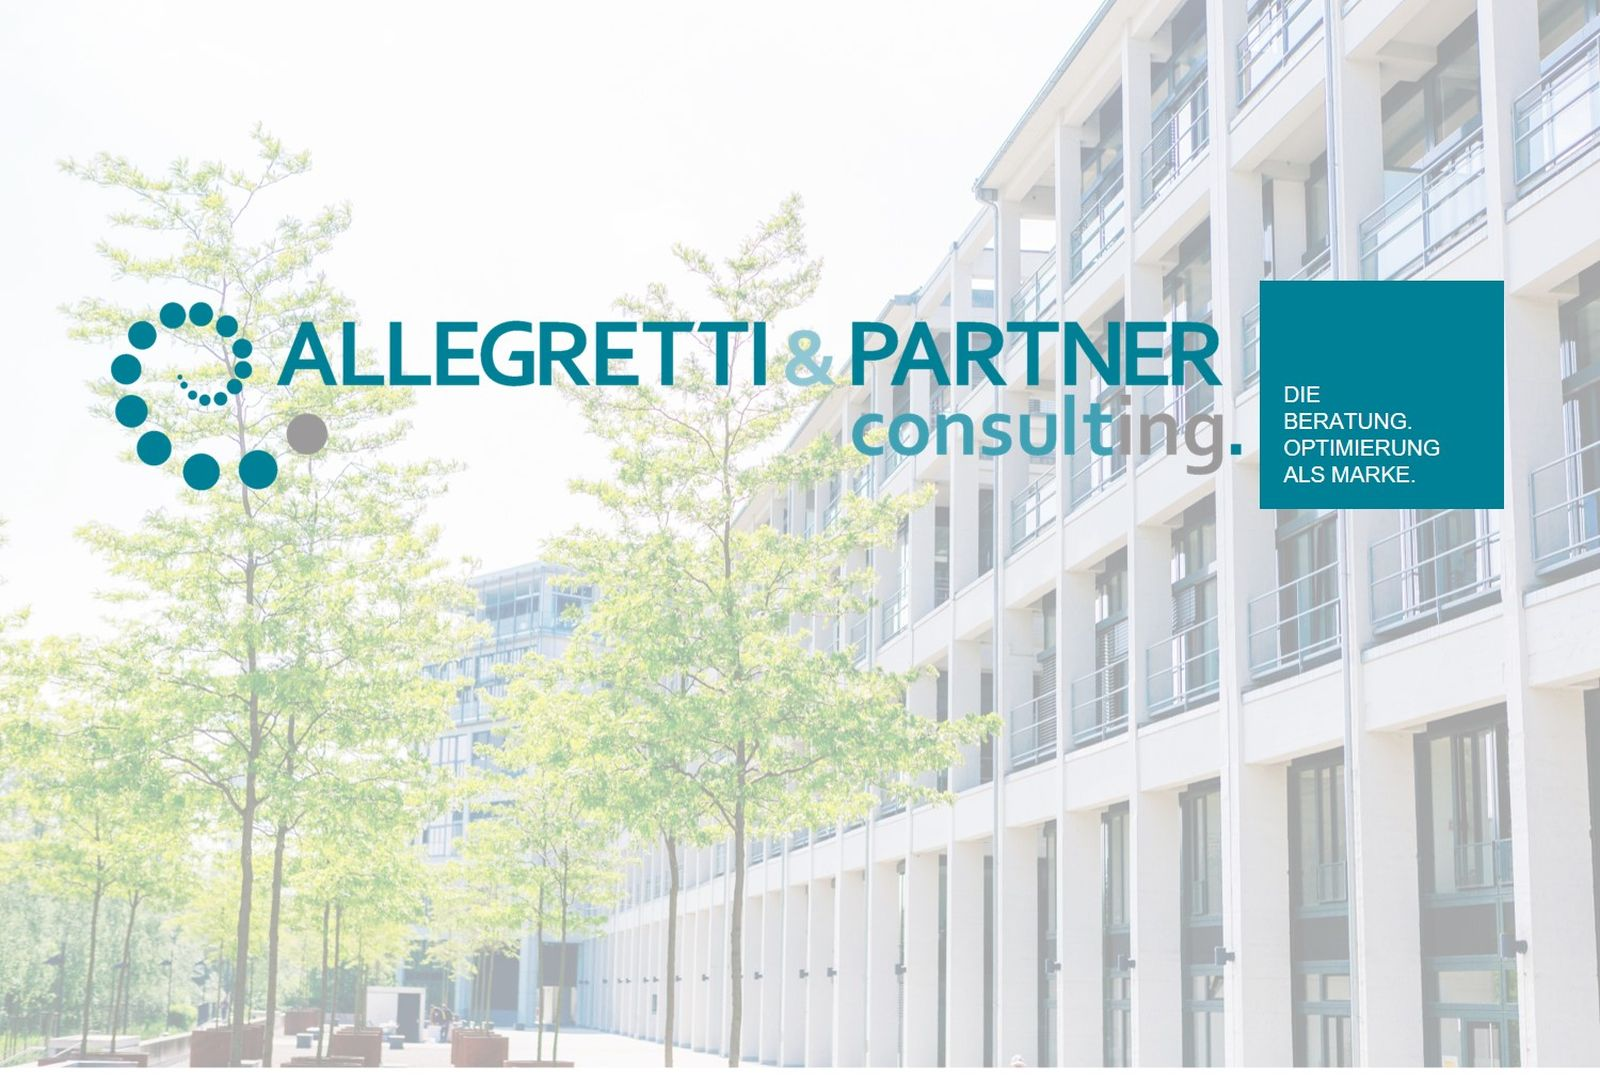 Allegretti & Partner Consulting